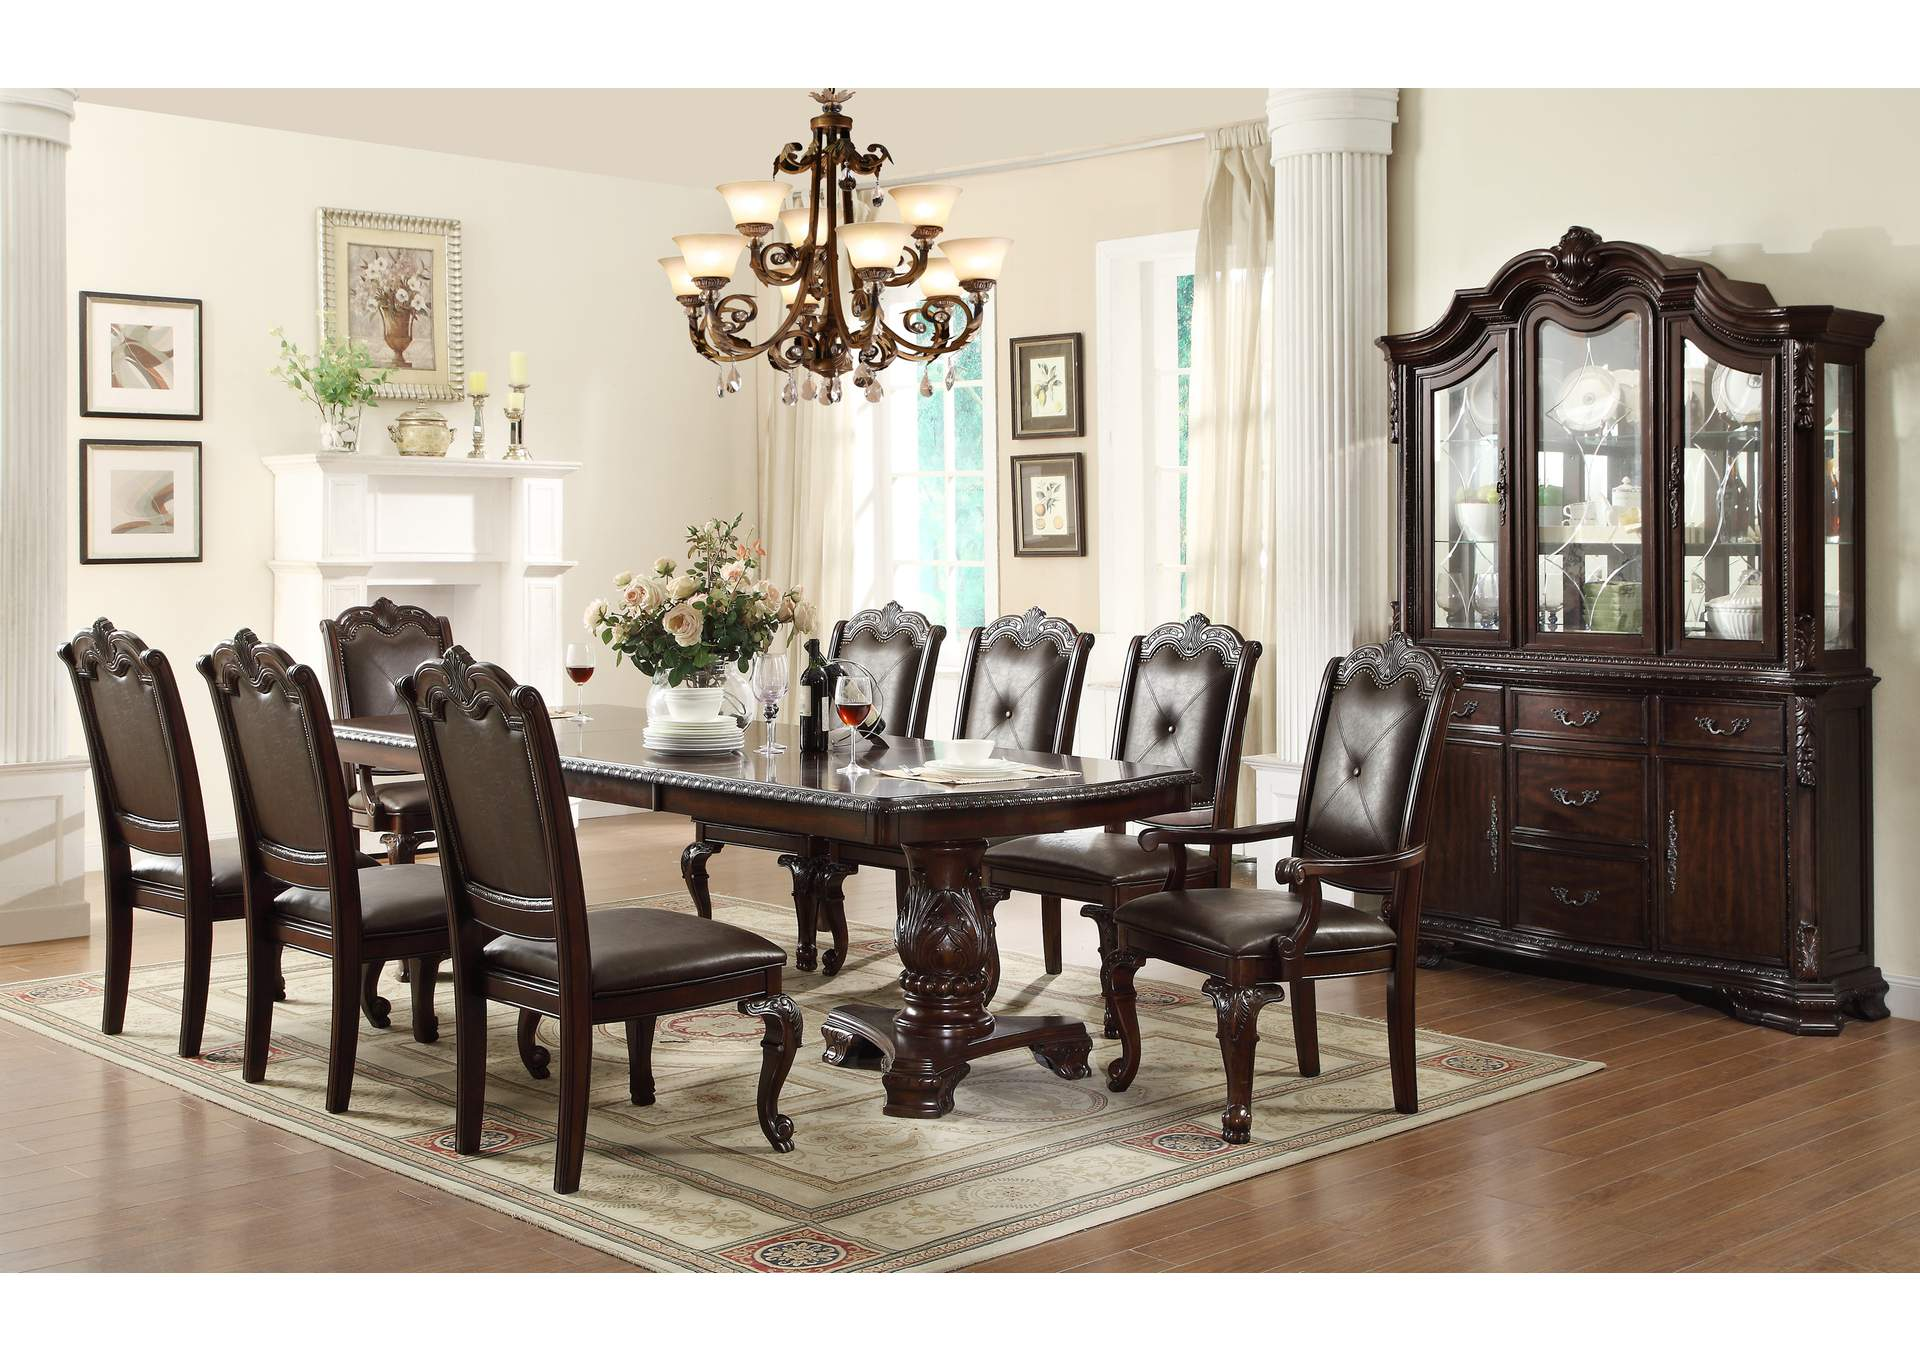 Kiera Rectangular Dining Room Table w/6 Side Chairs,Crown Mark